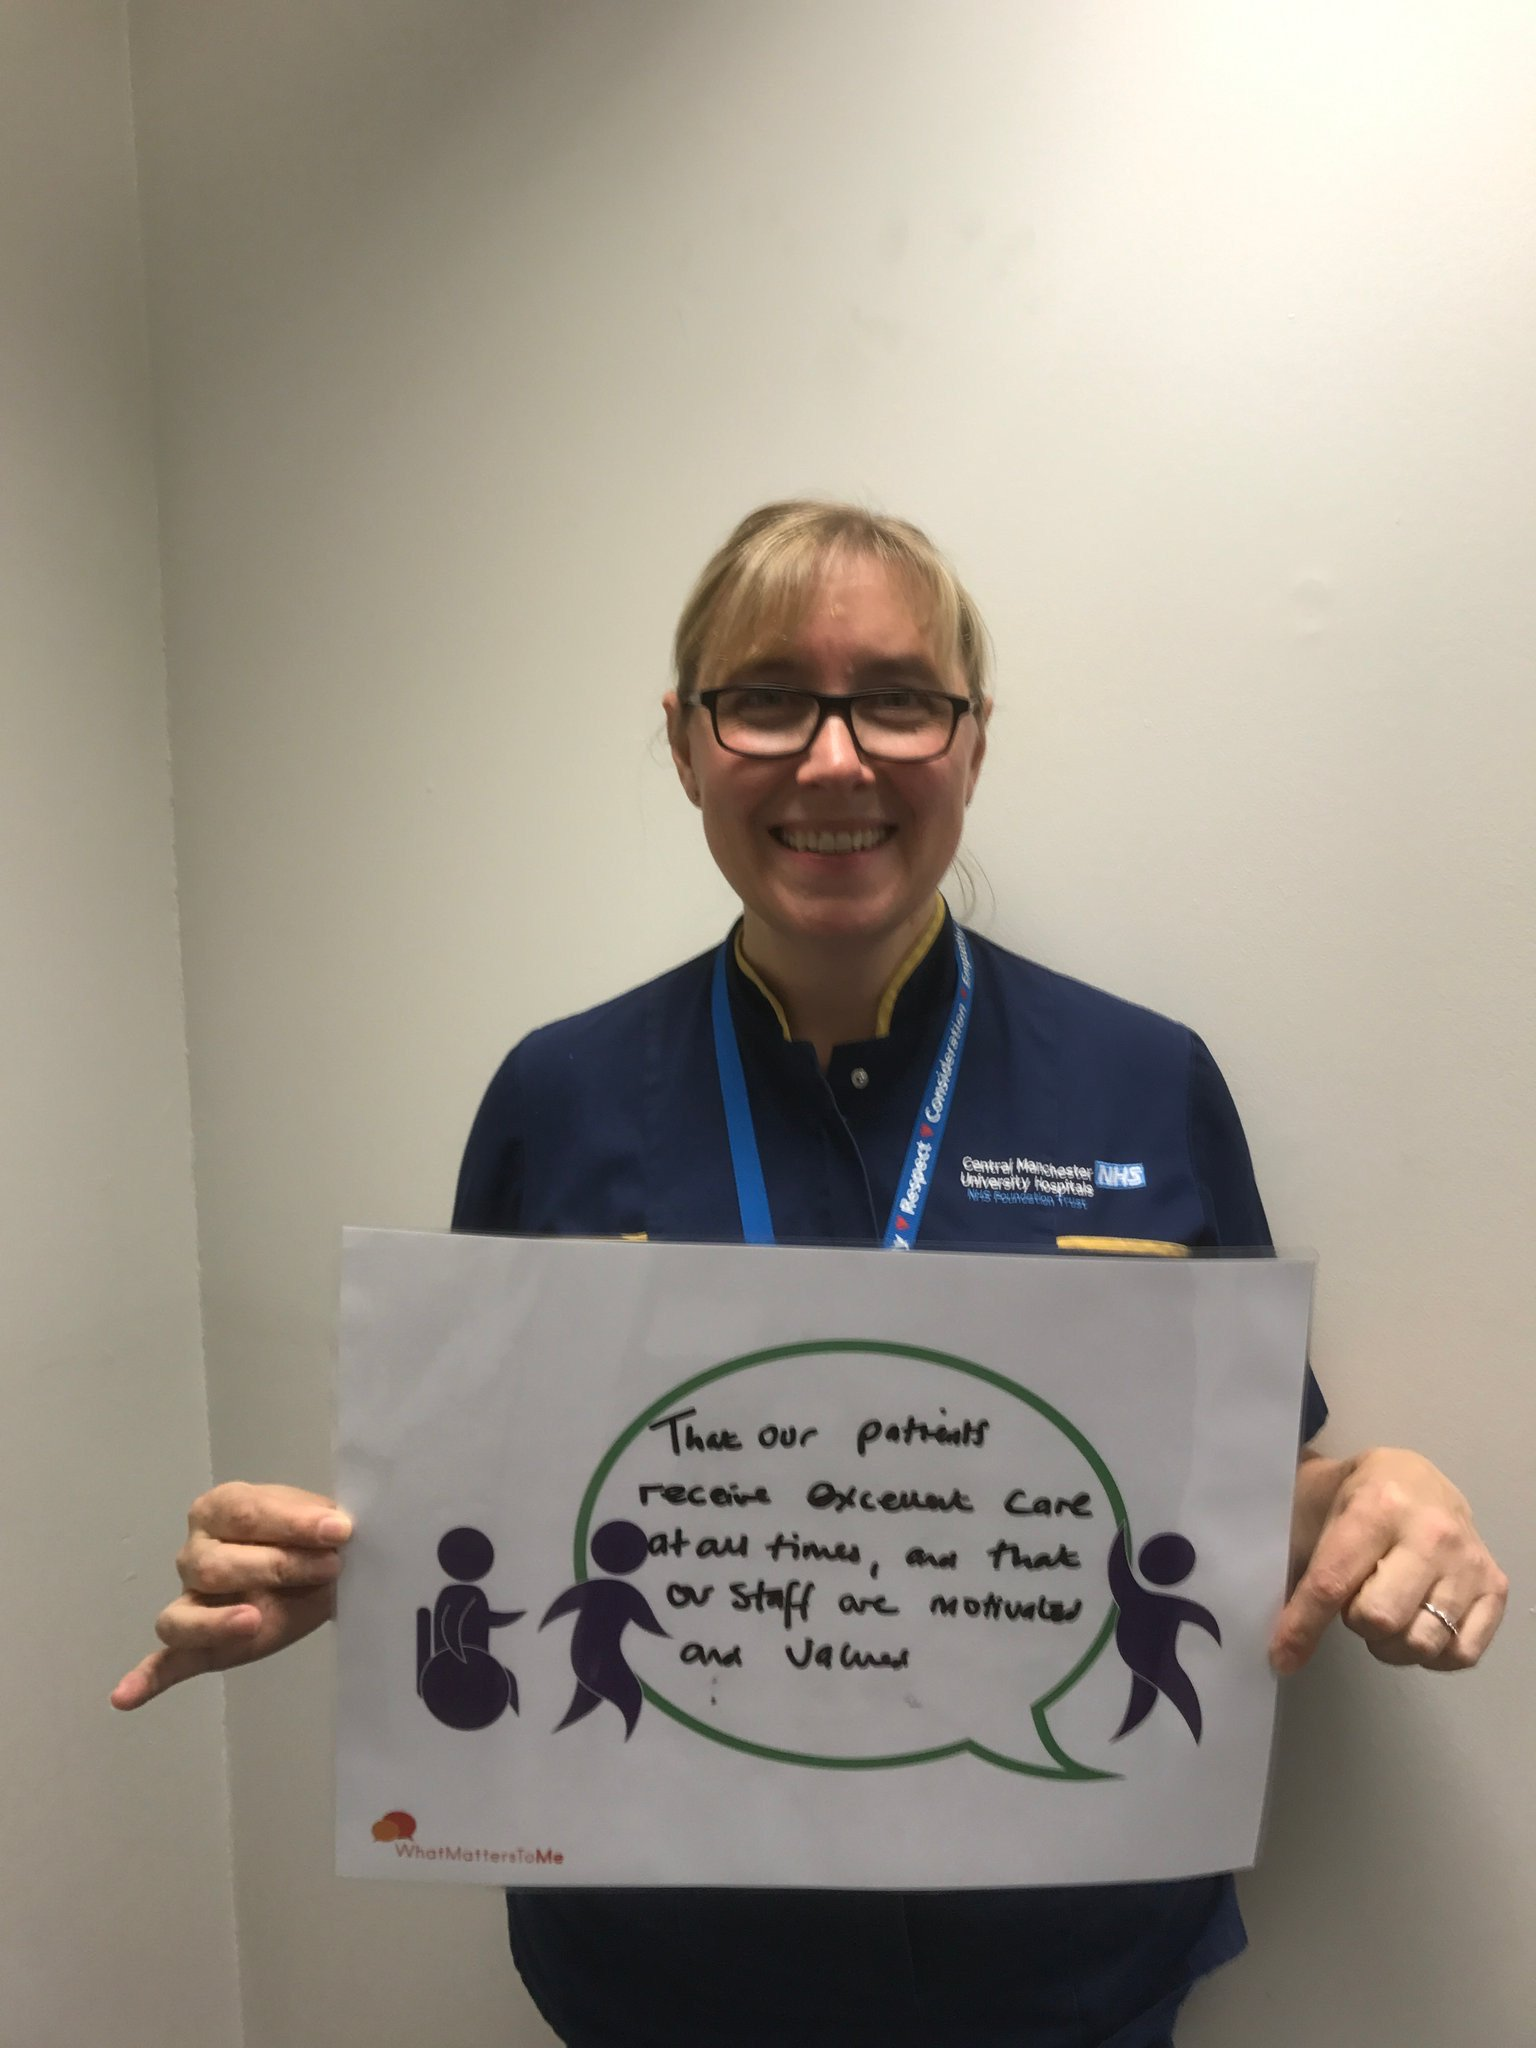 HON Anne Woodward #wmtm pledge ❤️that our pts receive excellent care at all times @CMFTNHS @stodges @DArmstrong70 @SueWardDN @cmftchiefnurse https://t.co/kW2SUw6Qom